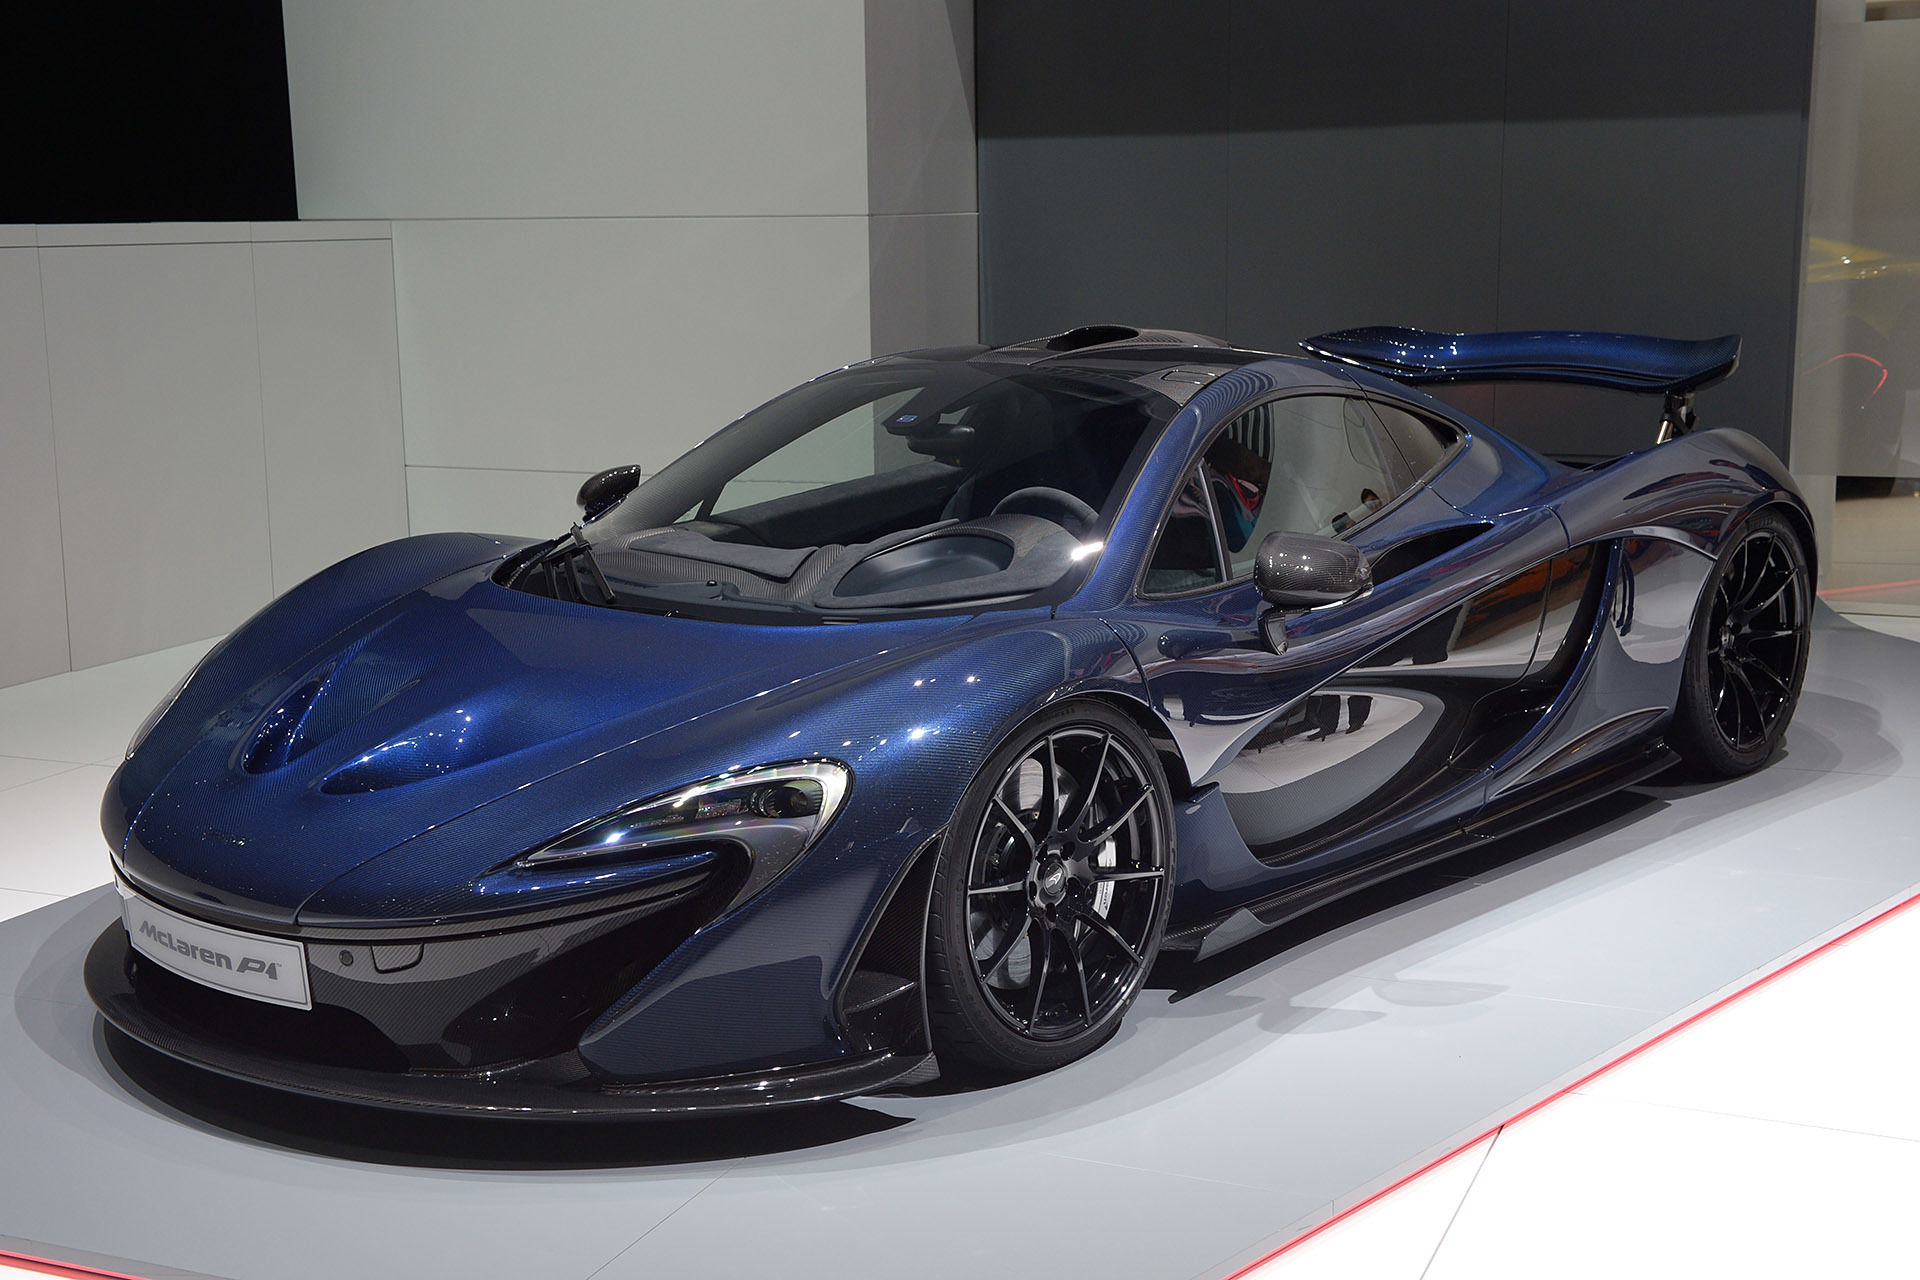 McLaren Photo Galleries - Autoblog